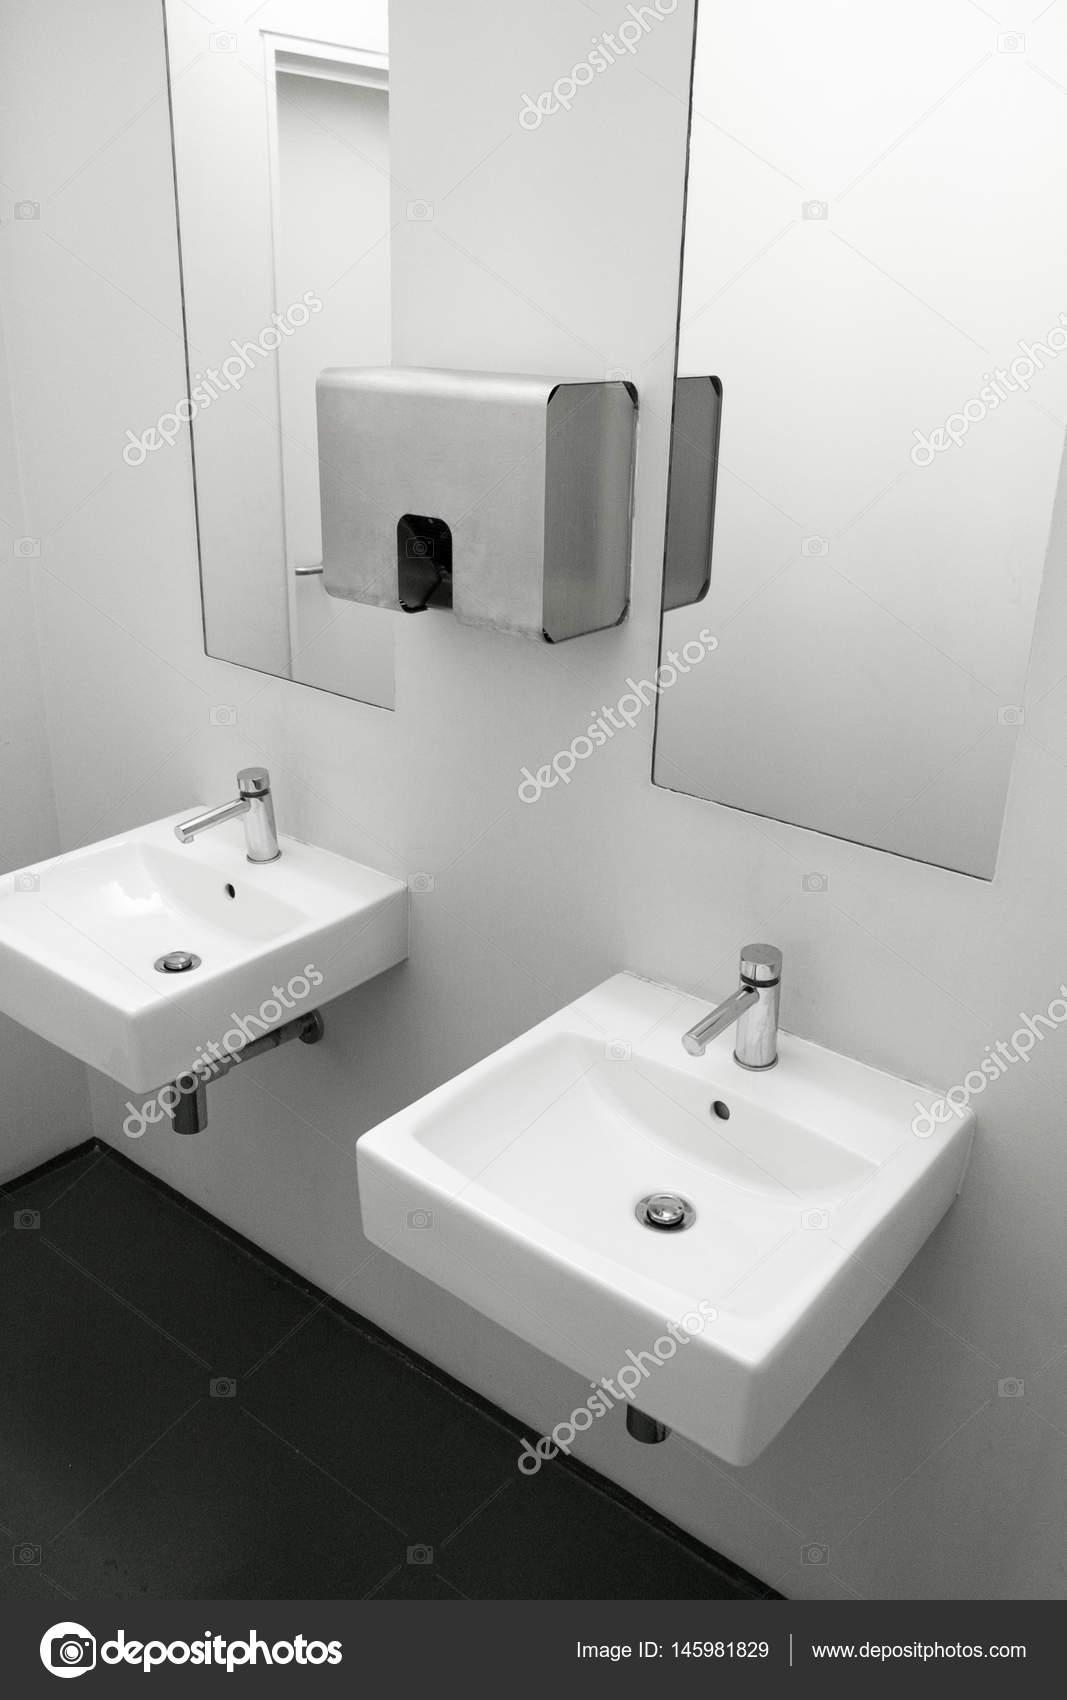 Ceramic Sink With Stainless Steel Accessories In Modern Washroom Two Sinks To European Public Toilet Washbasin White Bathroom